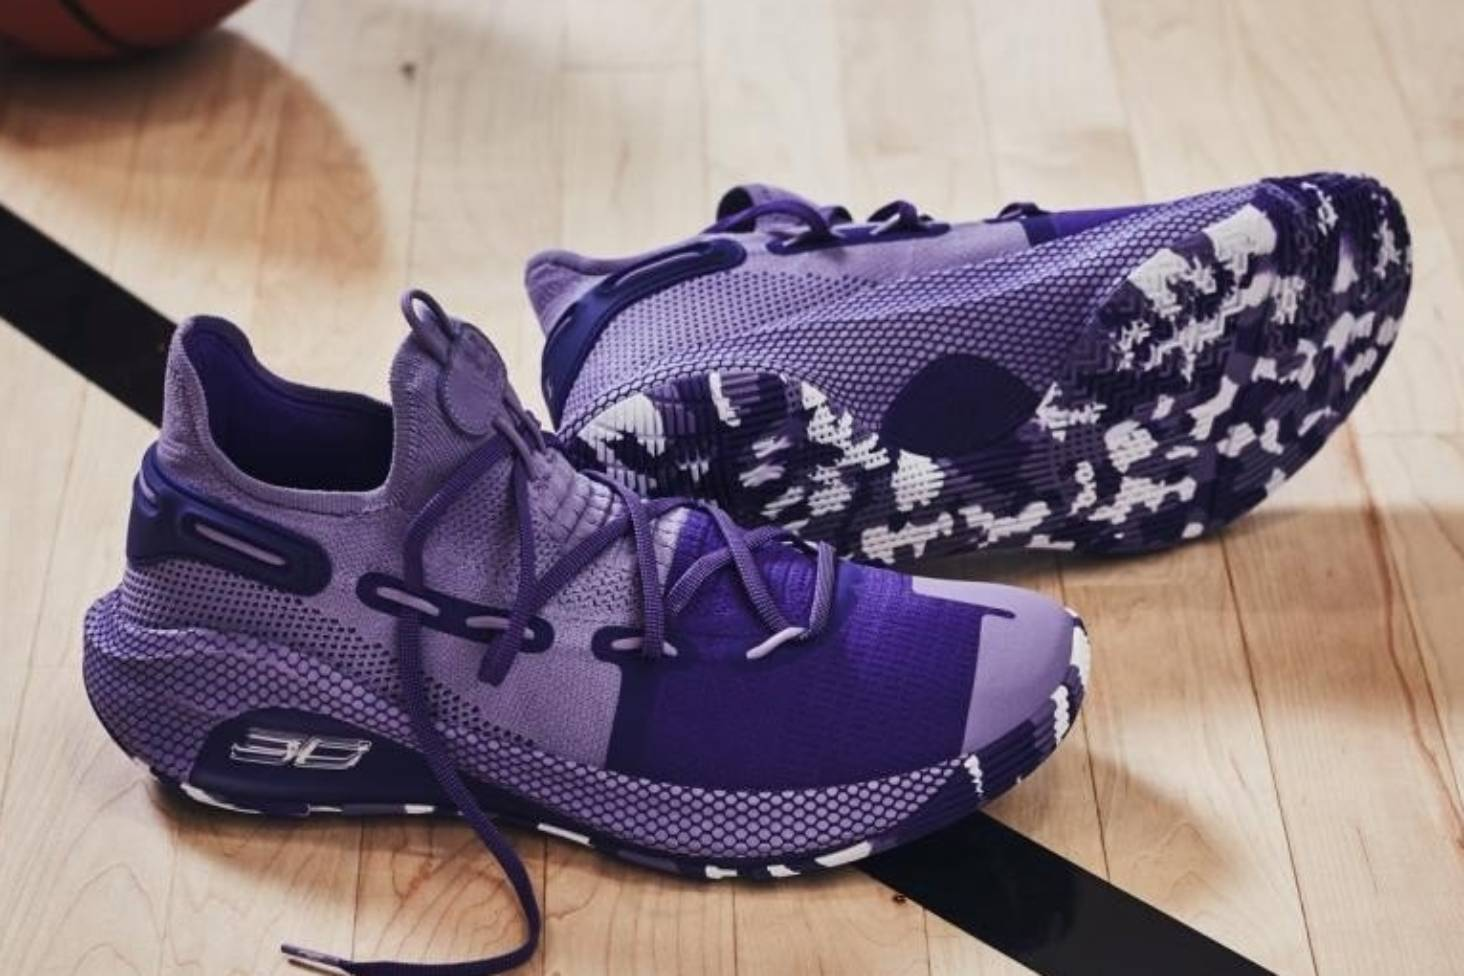 069cc3d4d921 NBA star Steph Curry designs sneakers with 9-year-old girl